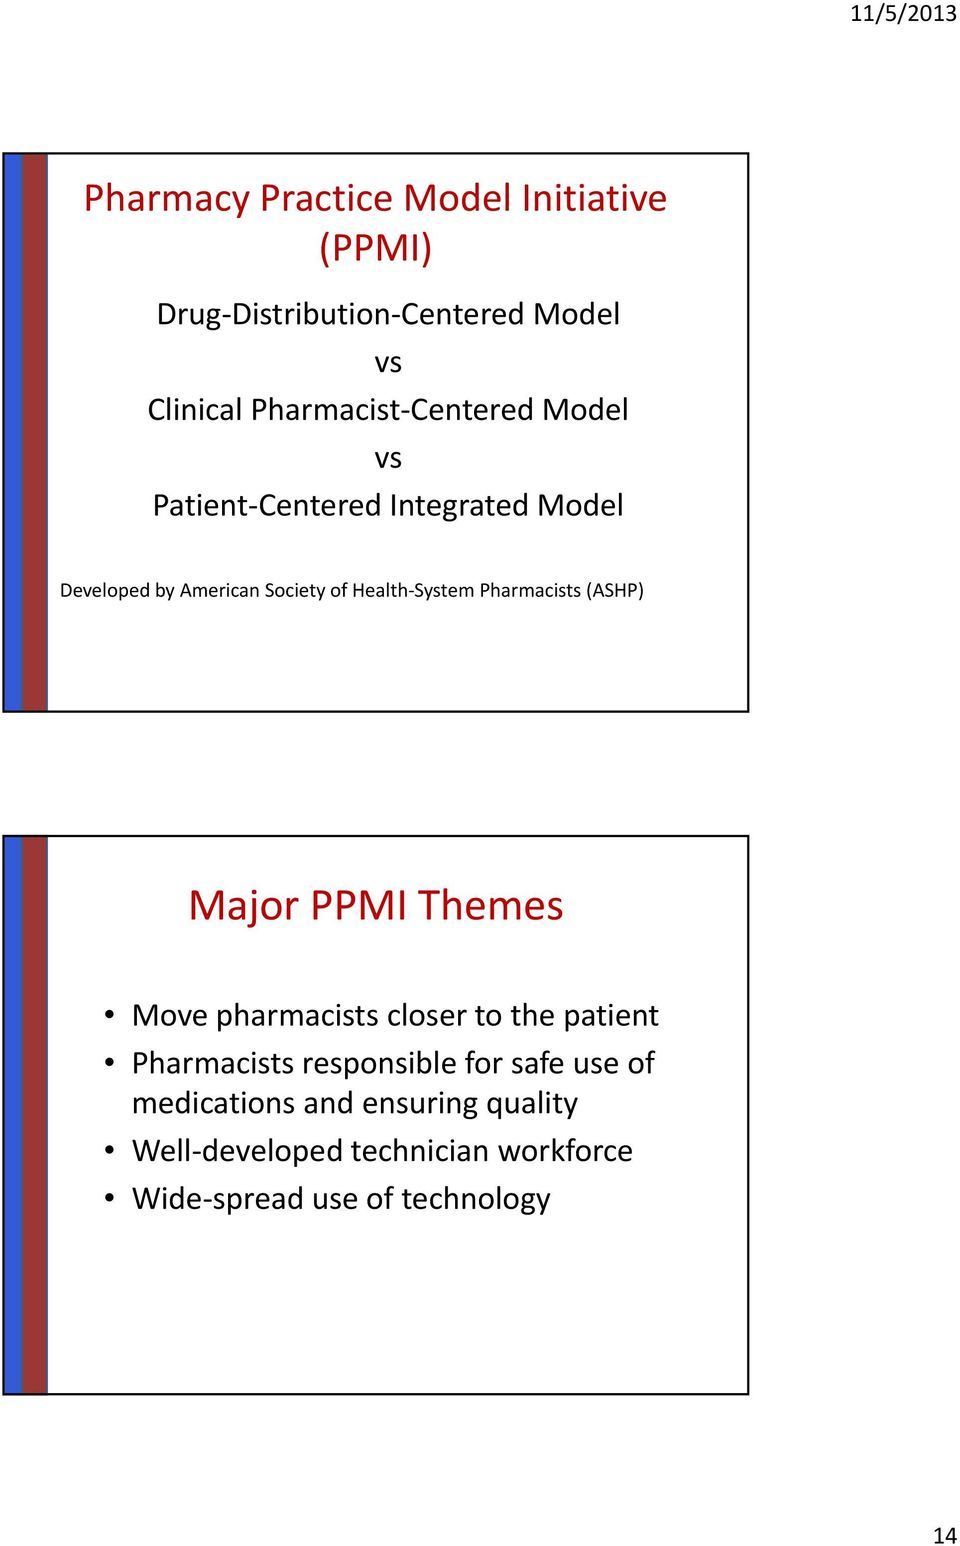 Pharmacists (ASHP) Major PPMI Themes Move pharmacists closer to the patient Pharmacists responsible for